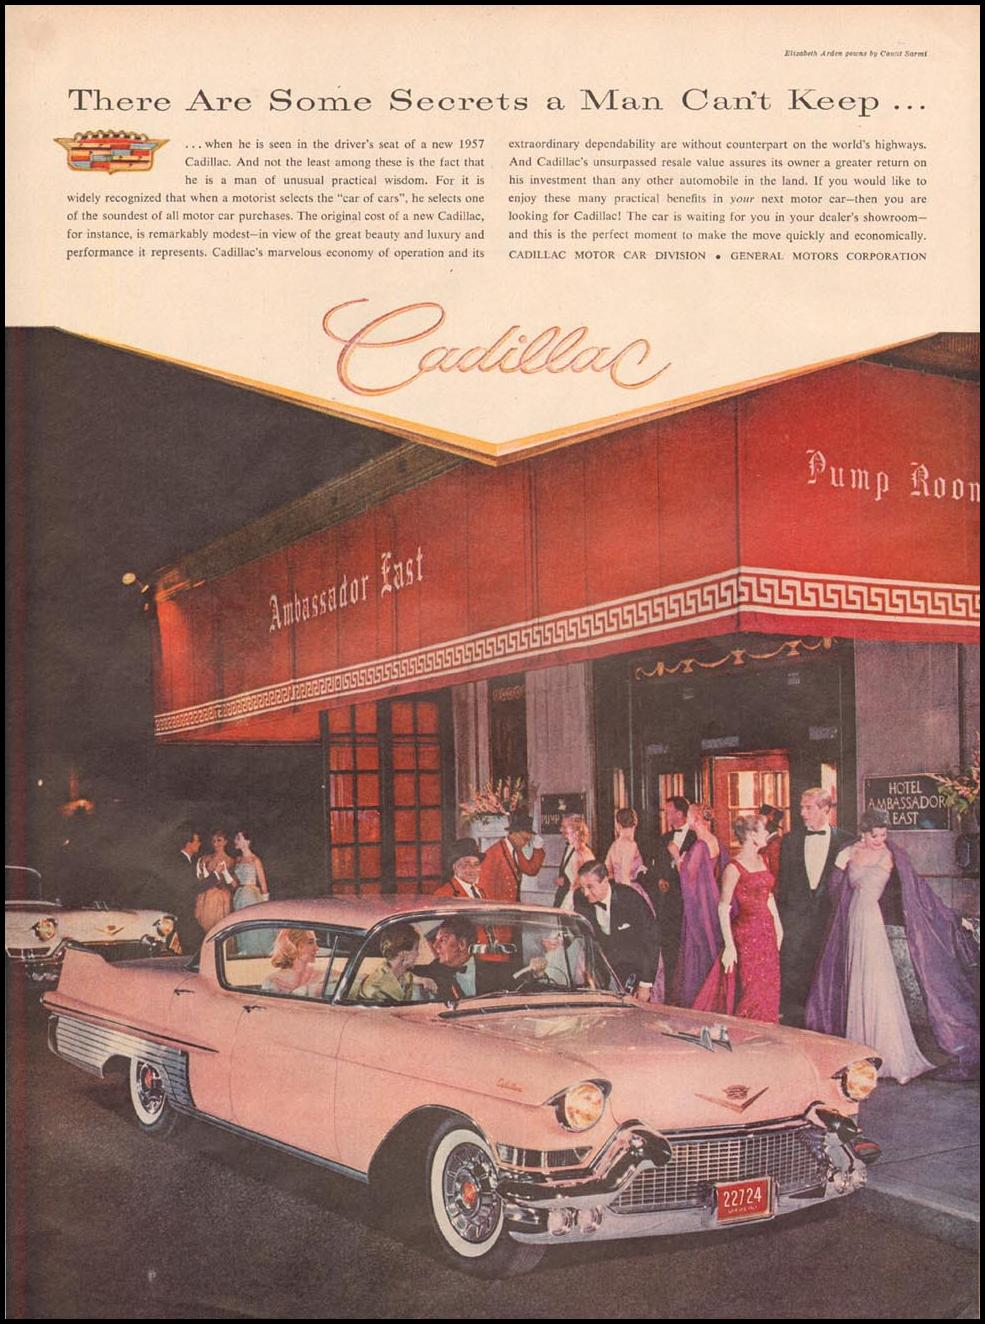 CADILLAC AUTOMOBILES